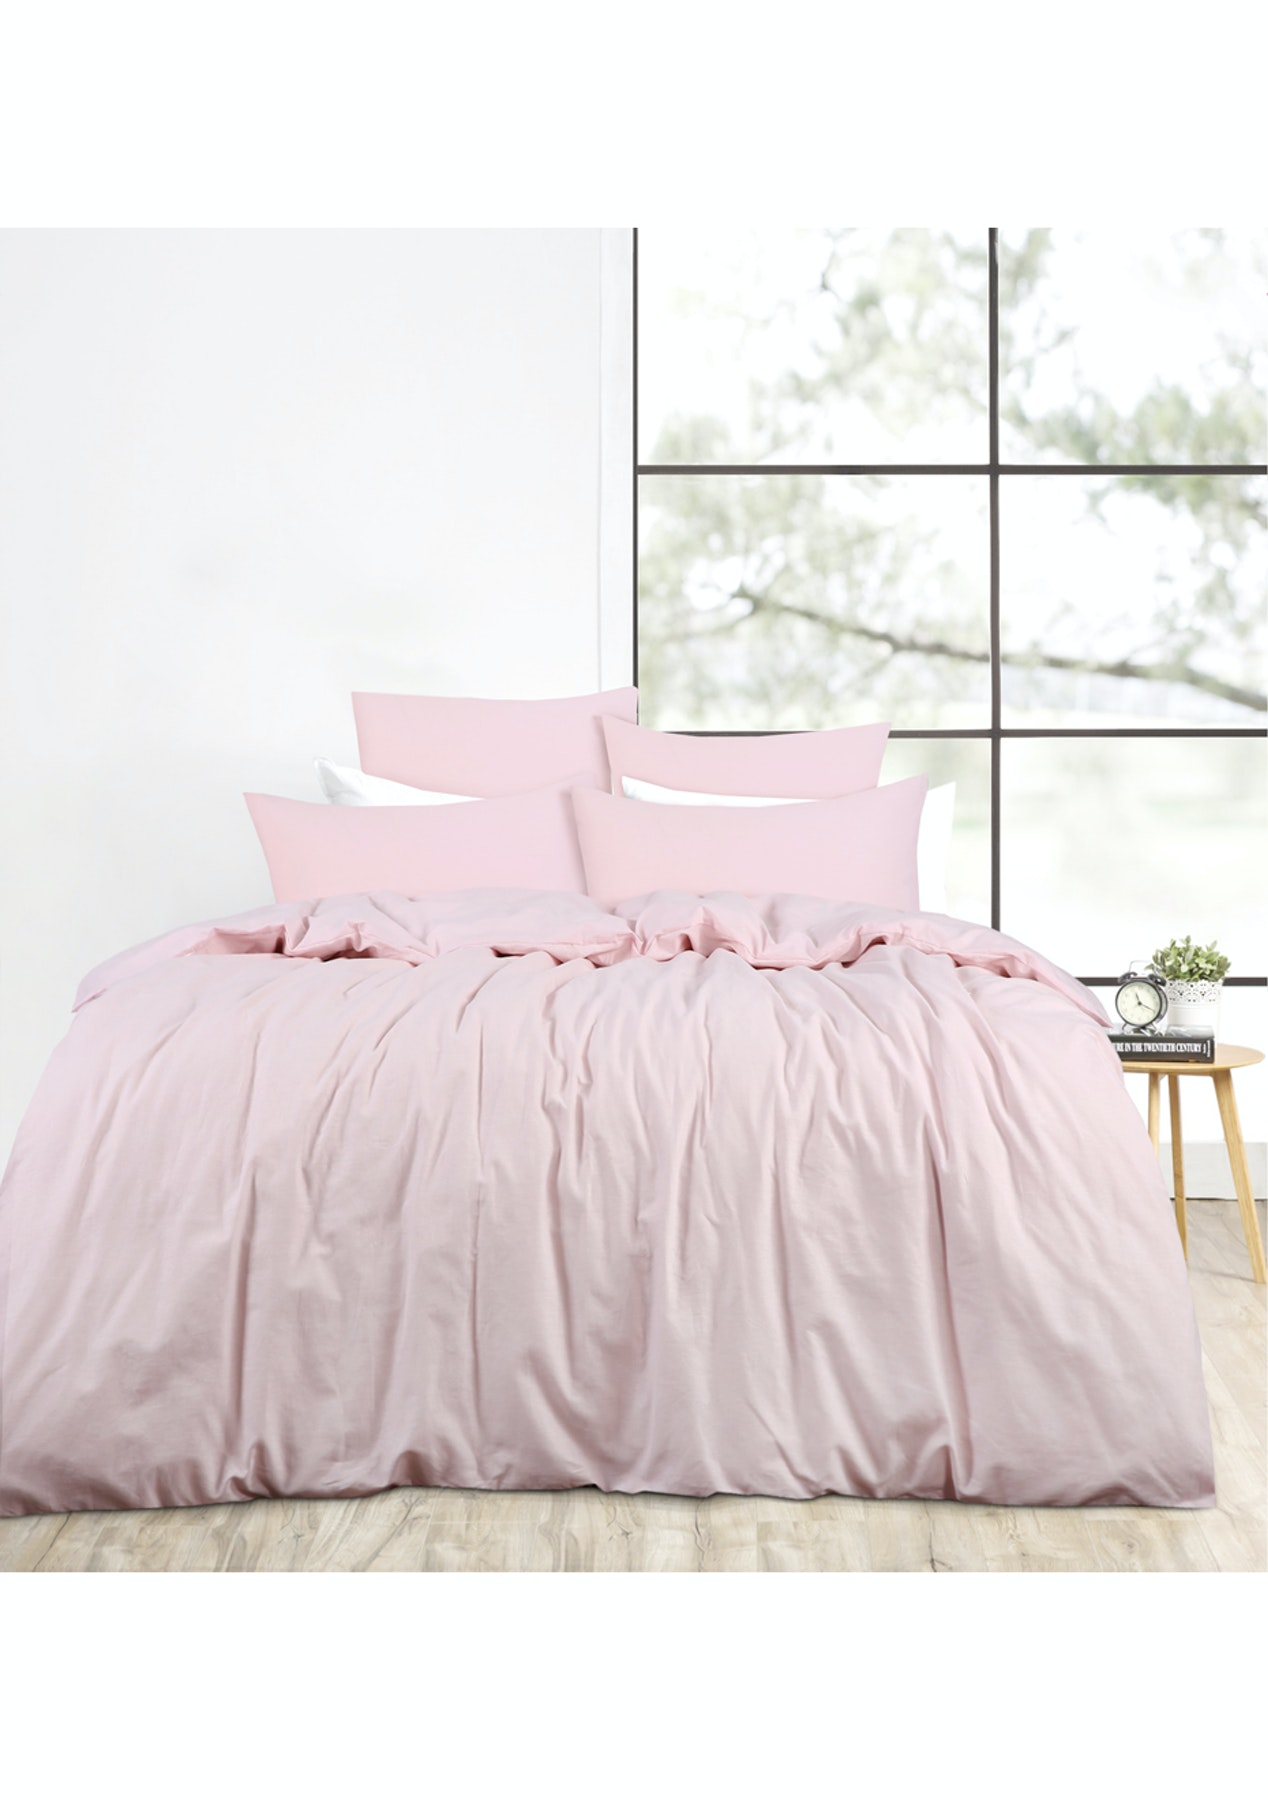 cover cotton doona quilt x of queen blush gallery velvet pictures pce king set or duvet super photo